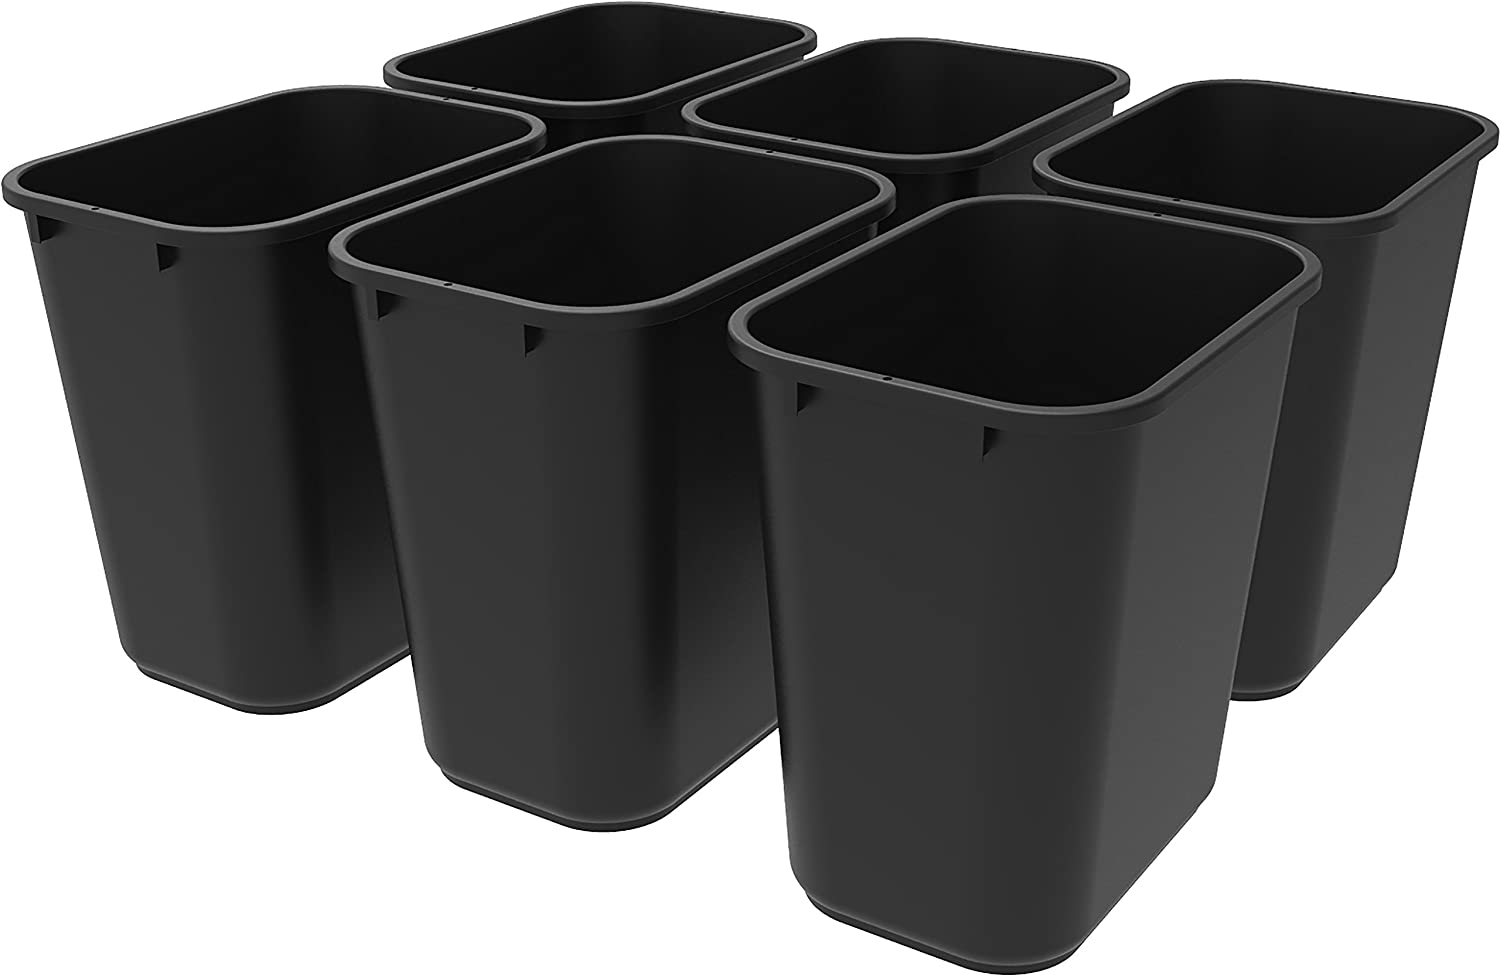 Storex Medium Waste Basket, 15 x 10.5 x 15 Inches, Black, Case of 6 (STX00710U06C)